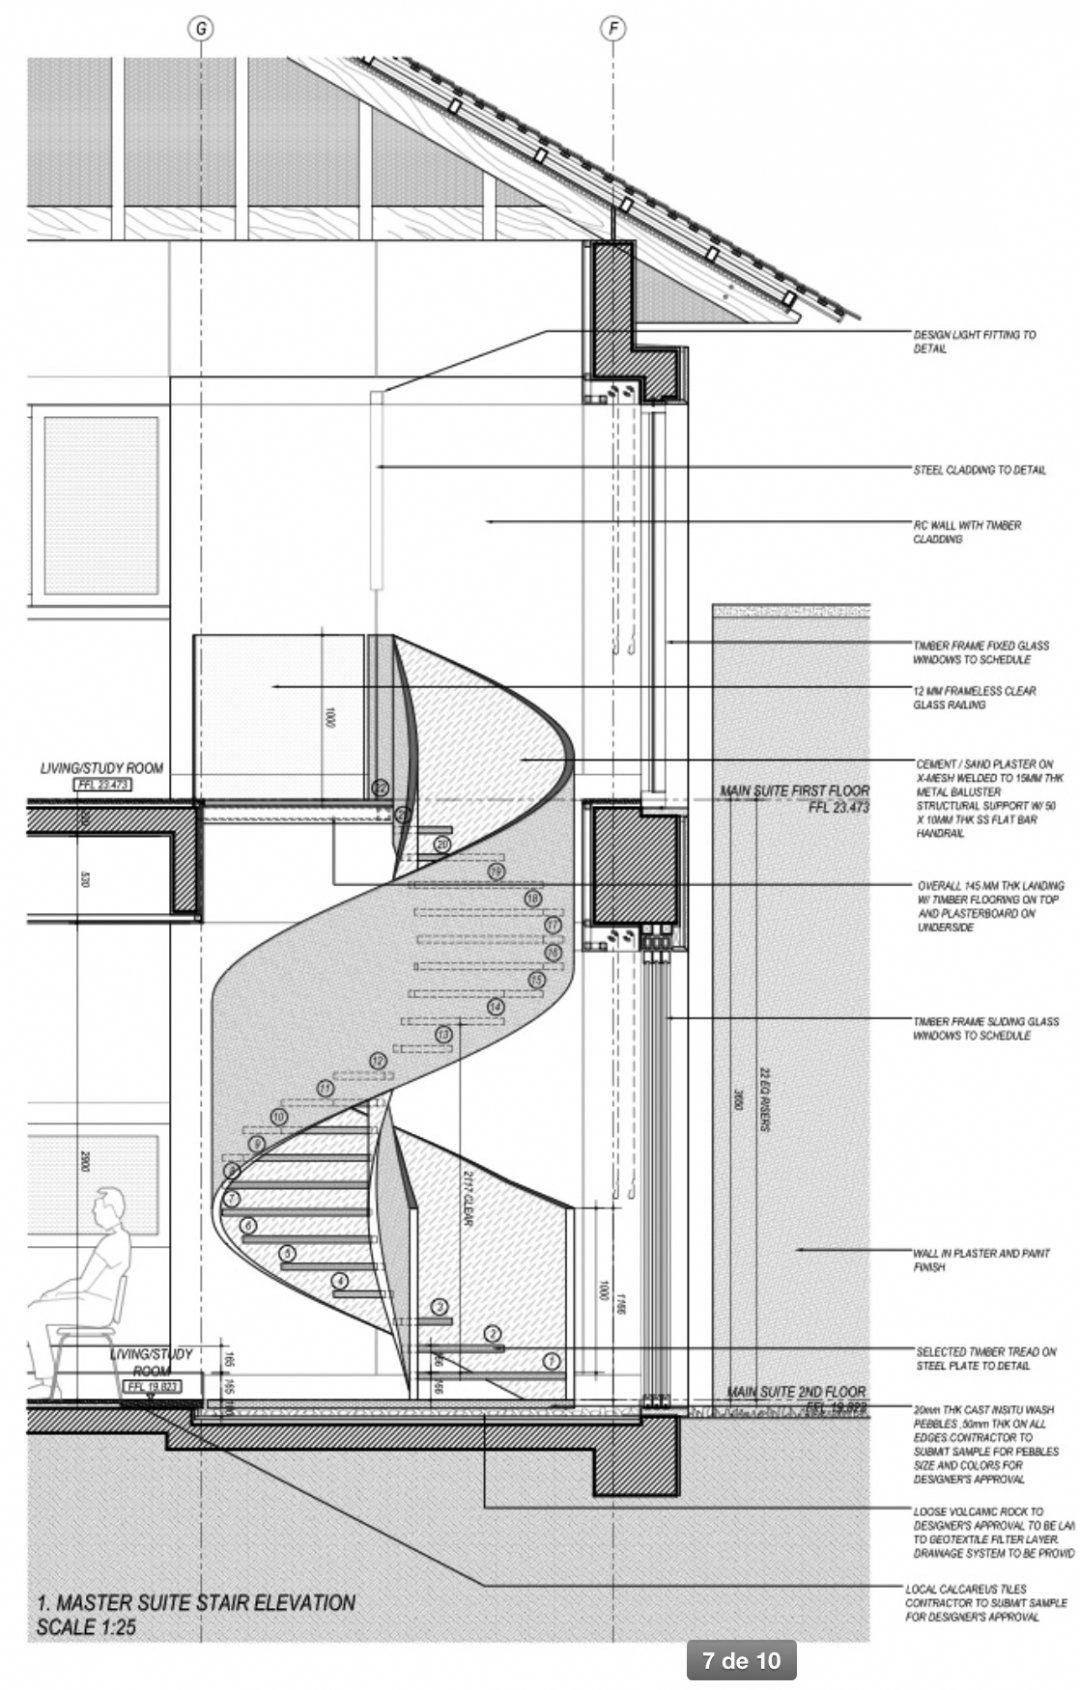 Stair Landing Design Small Ideas Drawings On Walls For Stairs Interior Decorating And Hallways Hallway Bea Spiral Staircase Plan Spiral Stairs Staircase Design